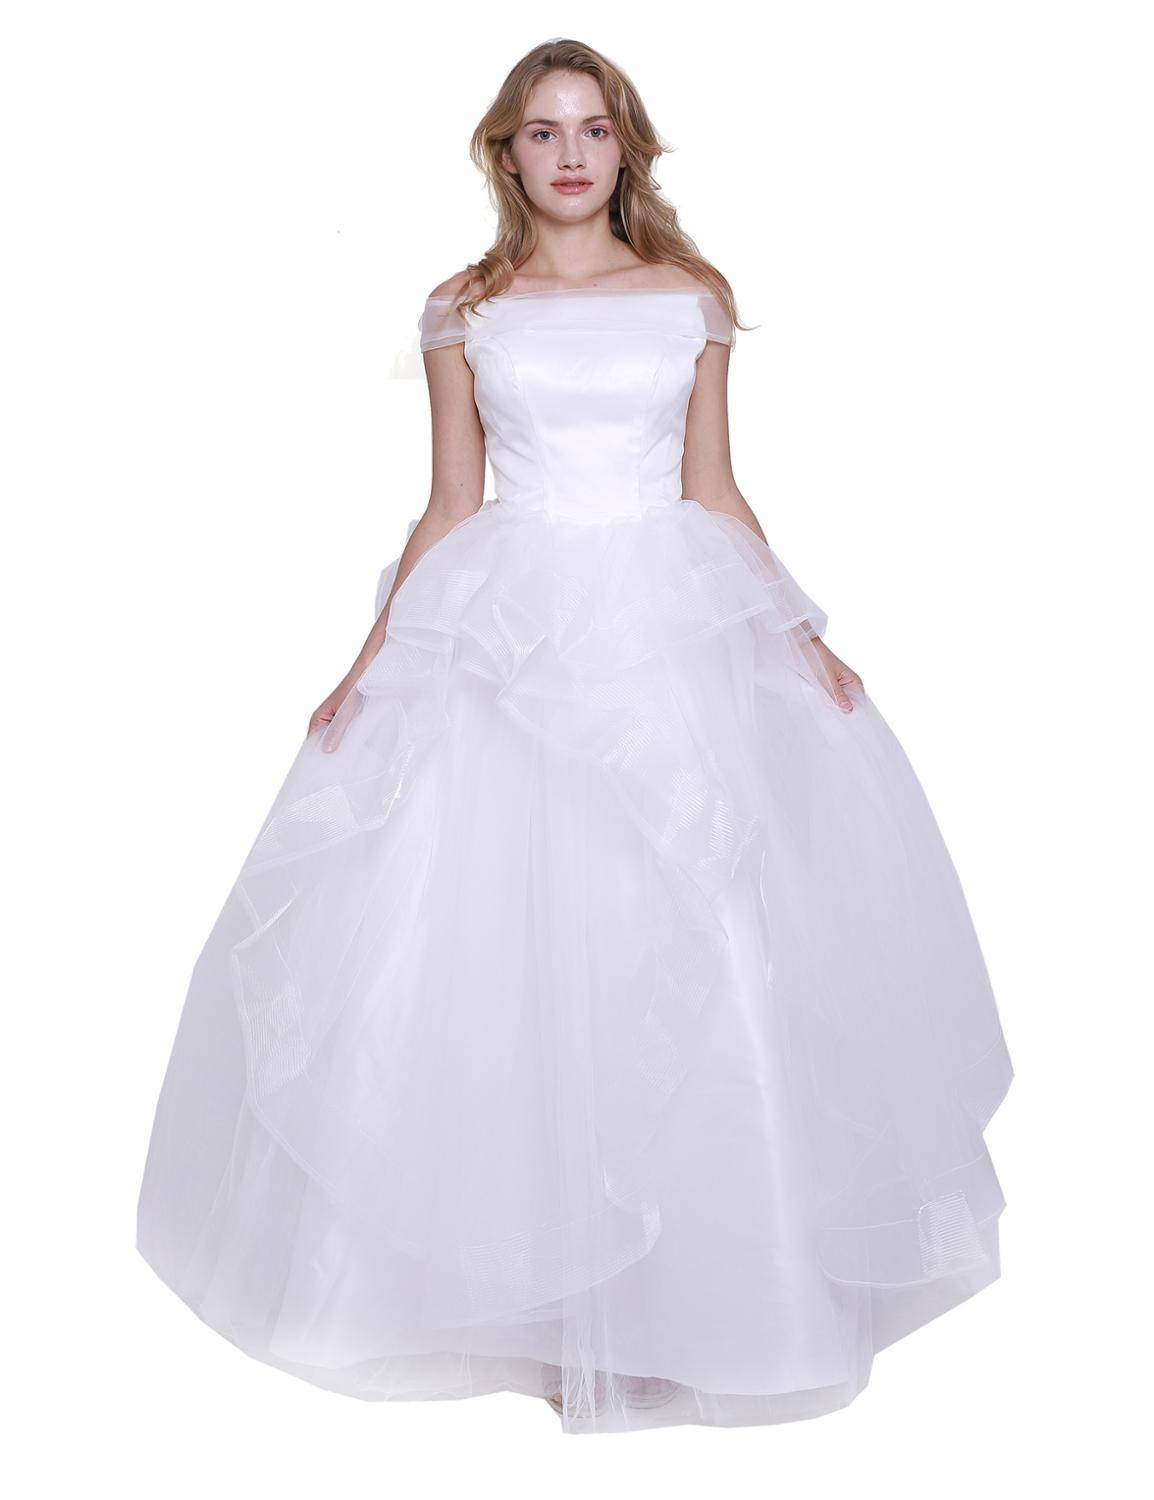 NEW 2020 St.Des Ivory A-line Russian Boat Neck Dream Floor-length Designer Elegant Beauty Queen Wedding Dress Wedding Gown